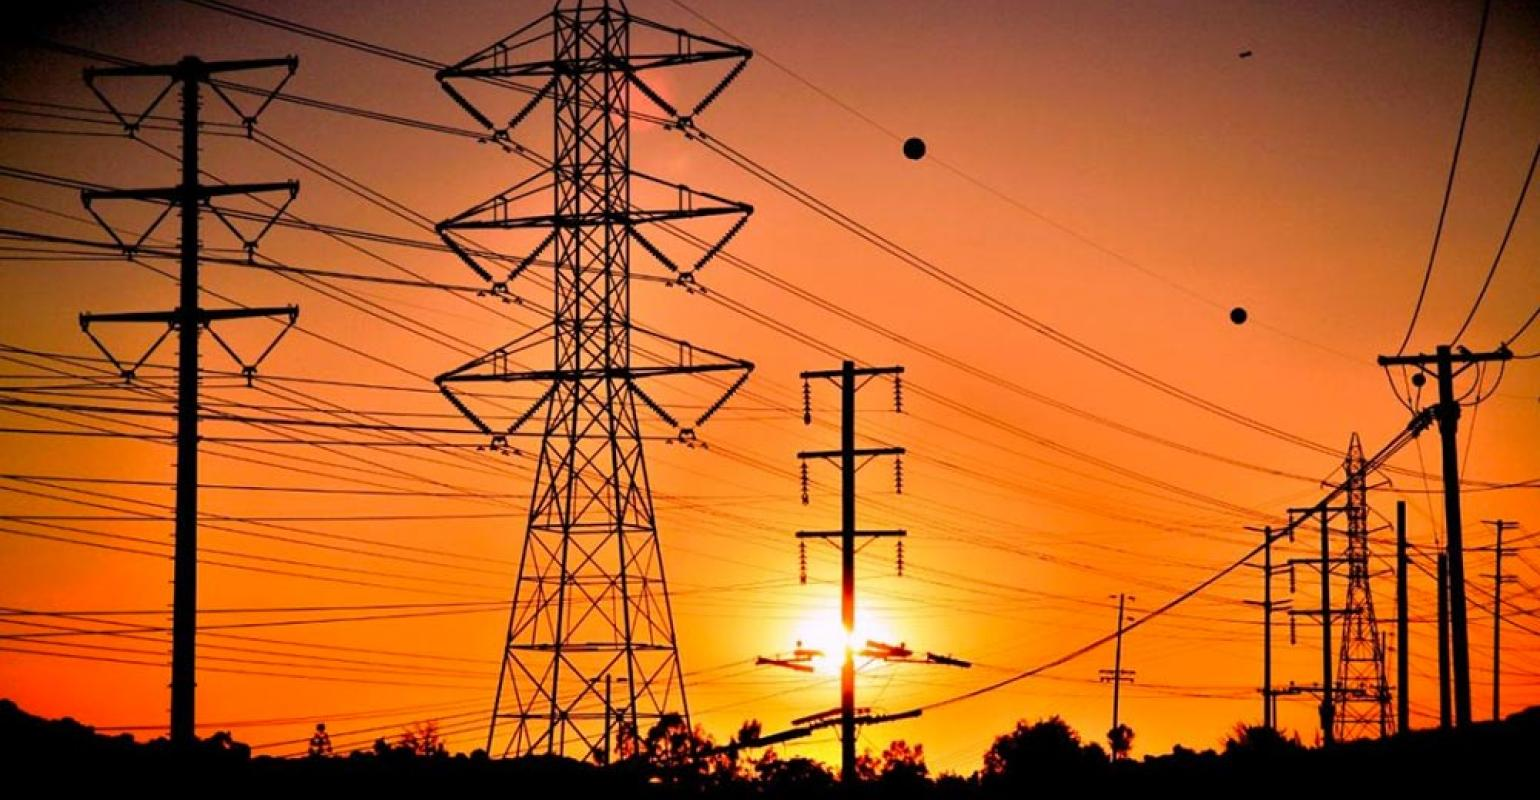 Romania-Moldova electric interconnection gets a 40 million-euro boost